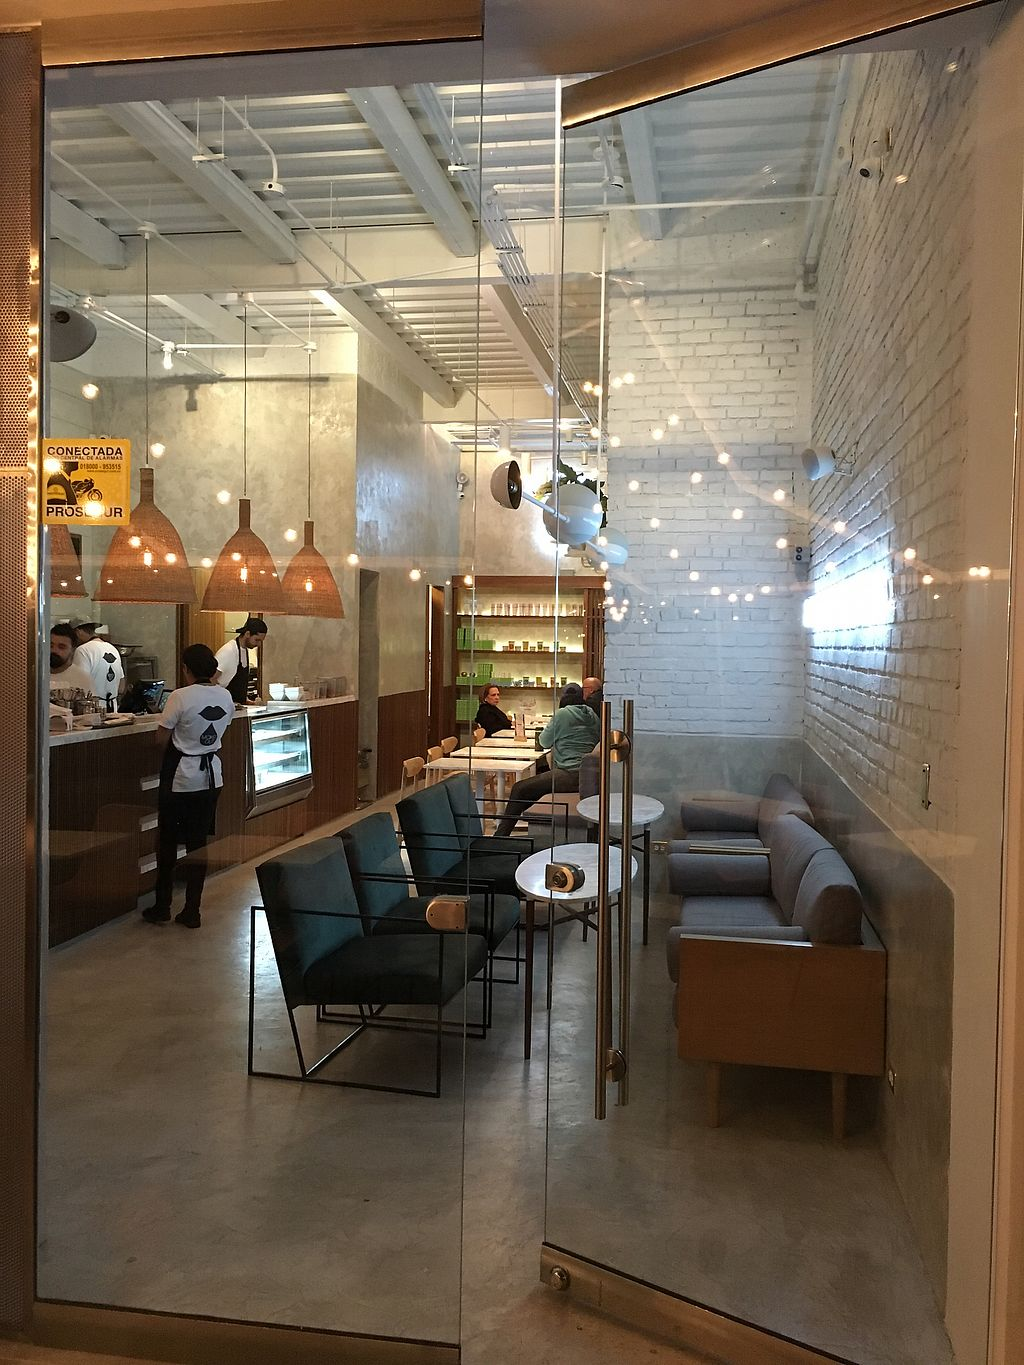 """Photo of Makeout Colombia  by <a href=""""/members/profile/LukeBarbara"""">LukeBarbara</a> <br/>Makeout Colombia beautiful modern decor  <br/> January 6, 2018  - <a href='/contact/abuse/image/108265/343556'>Report</a>"""